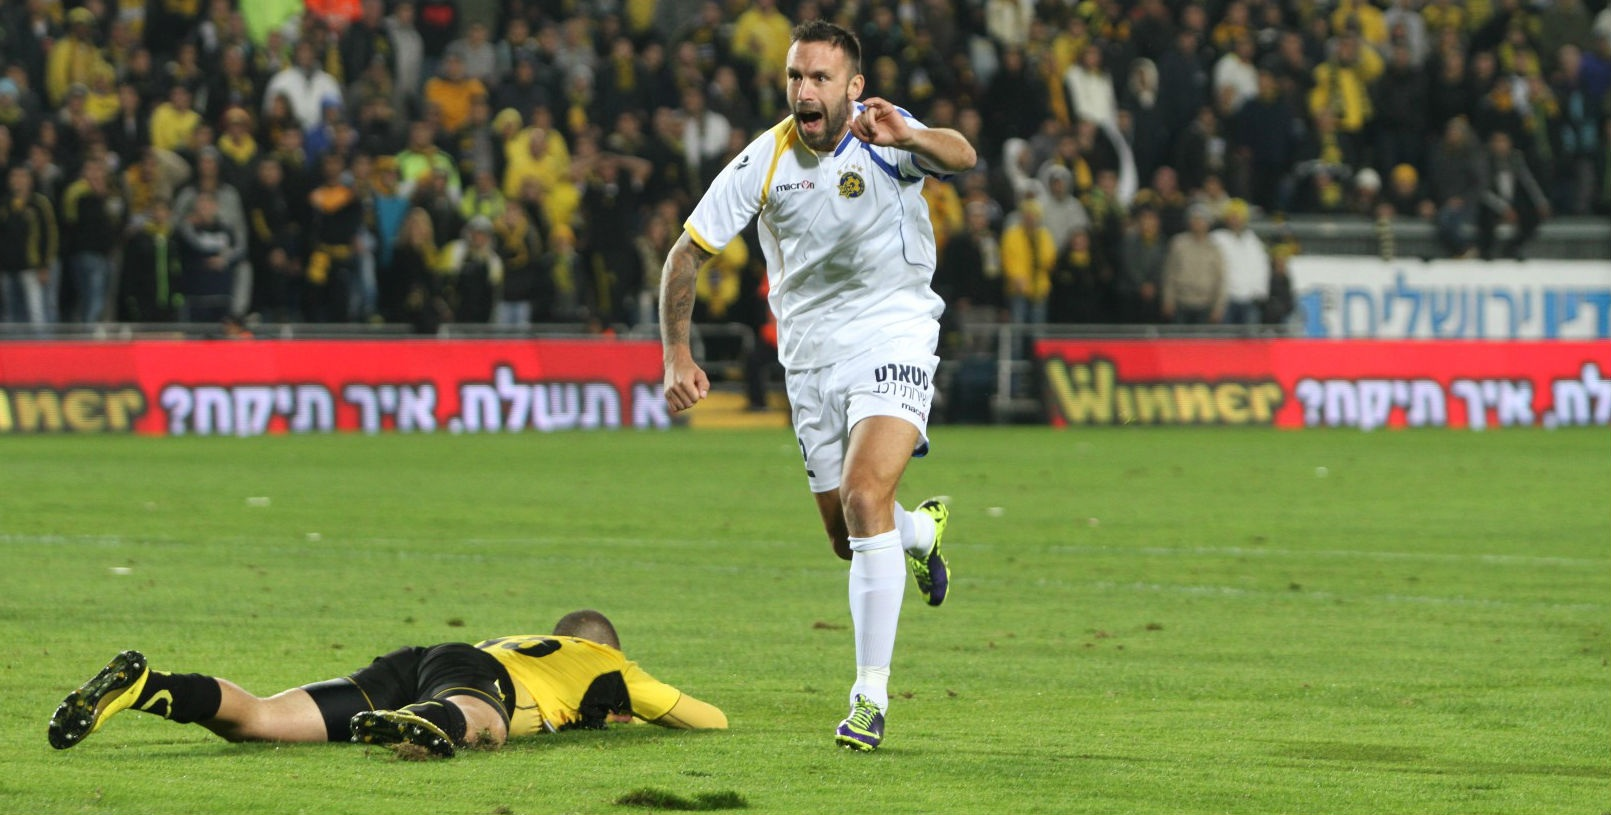 Rada Prica celebrating- Courtesy Maccabi Tel Aviv website